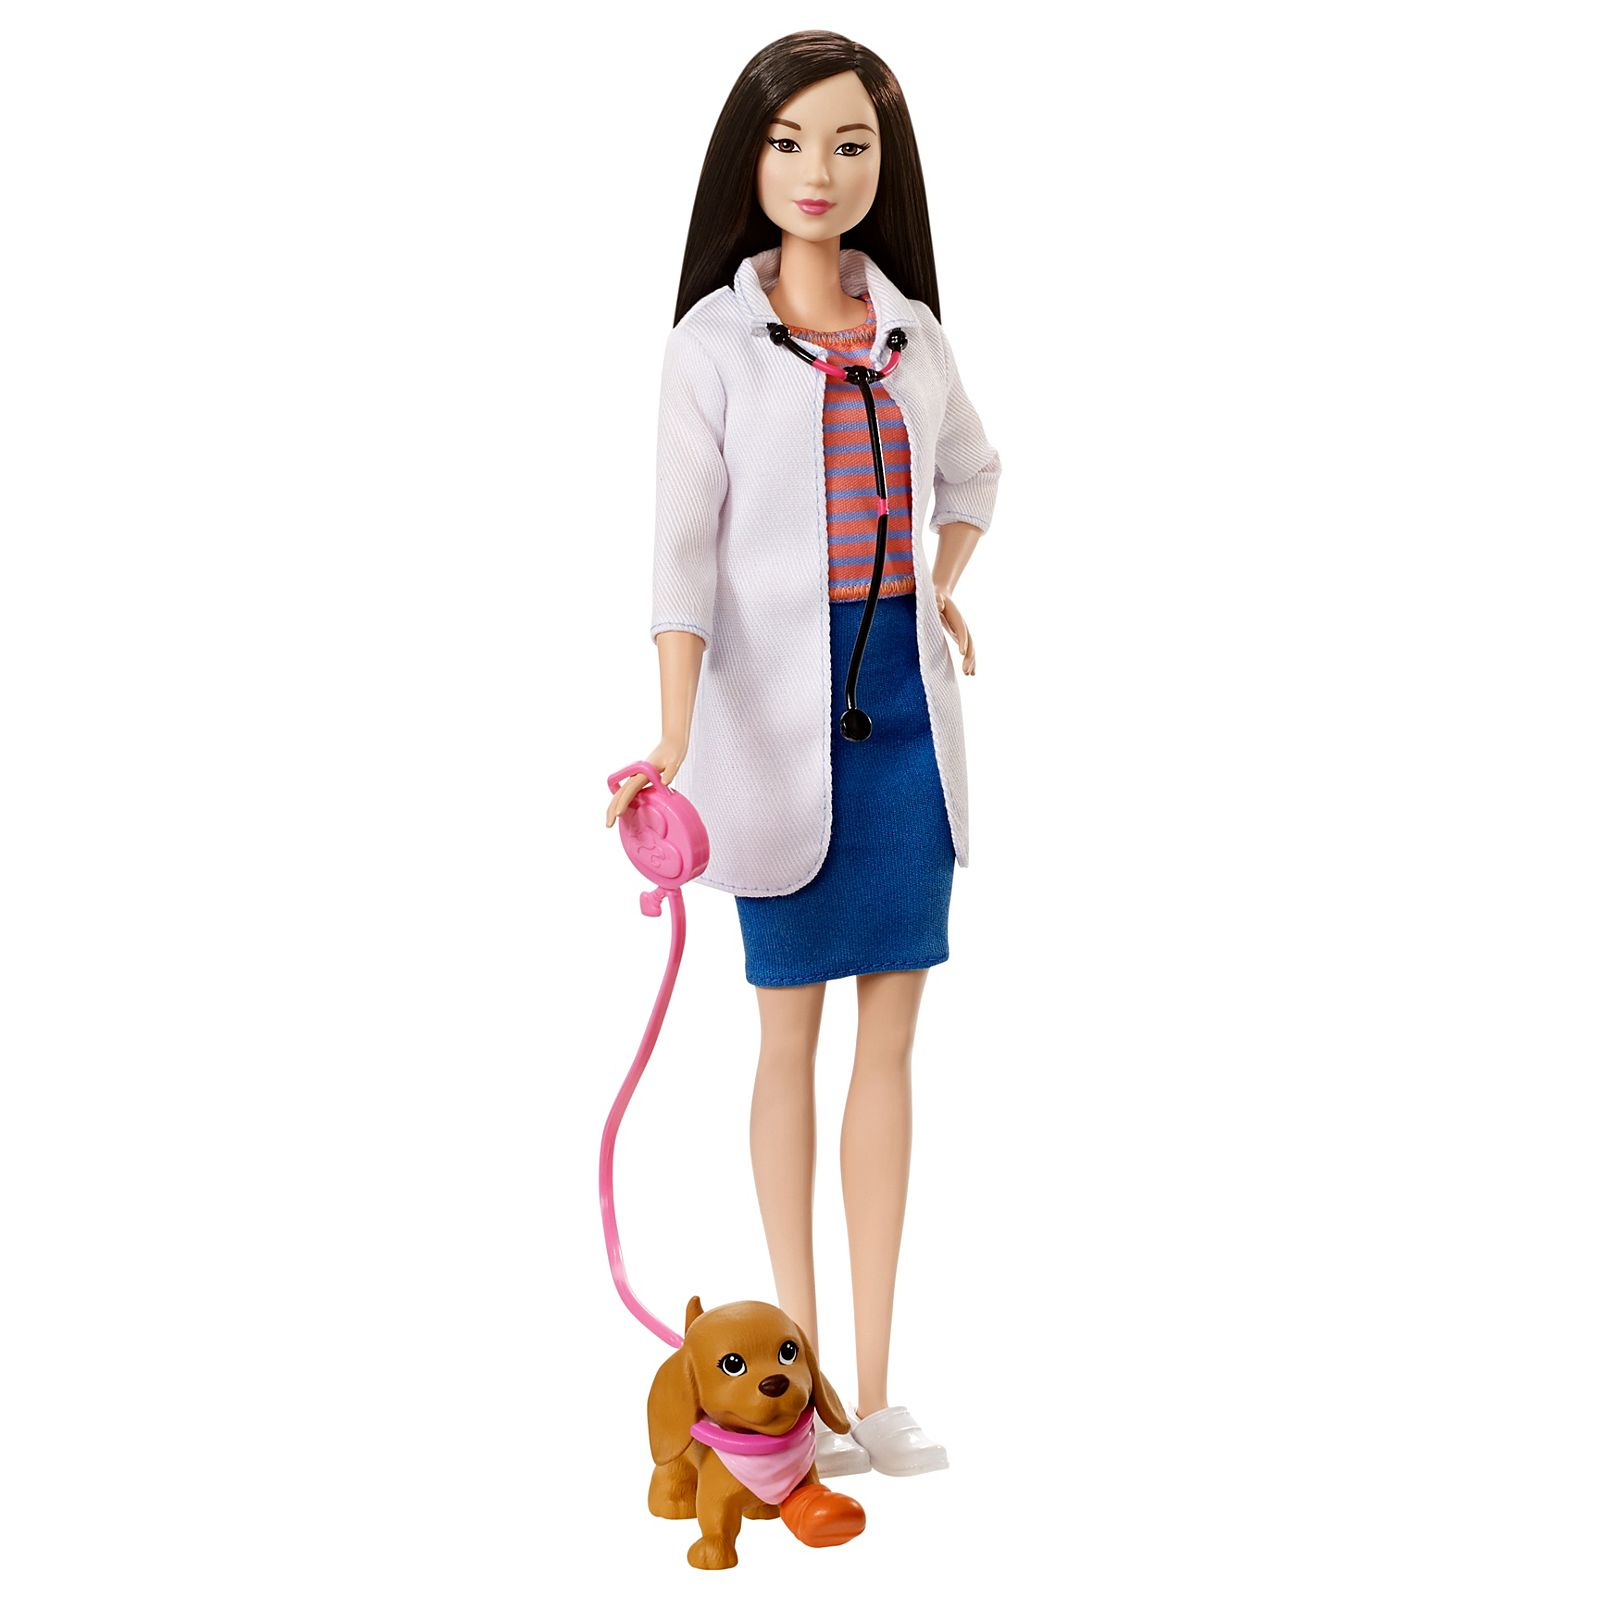 Barbie clinique v t rinaire - Barbie veterinaire ...